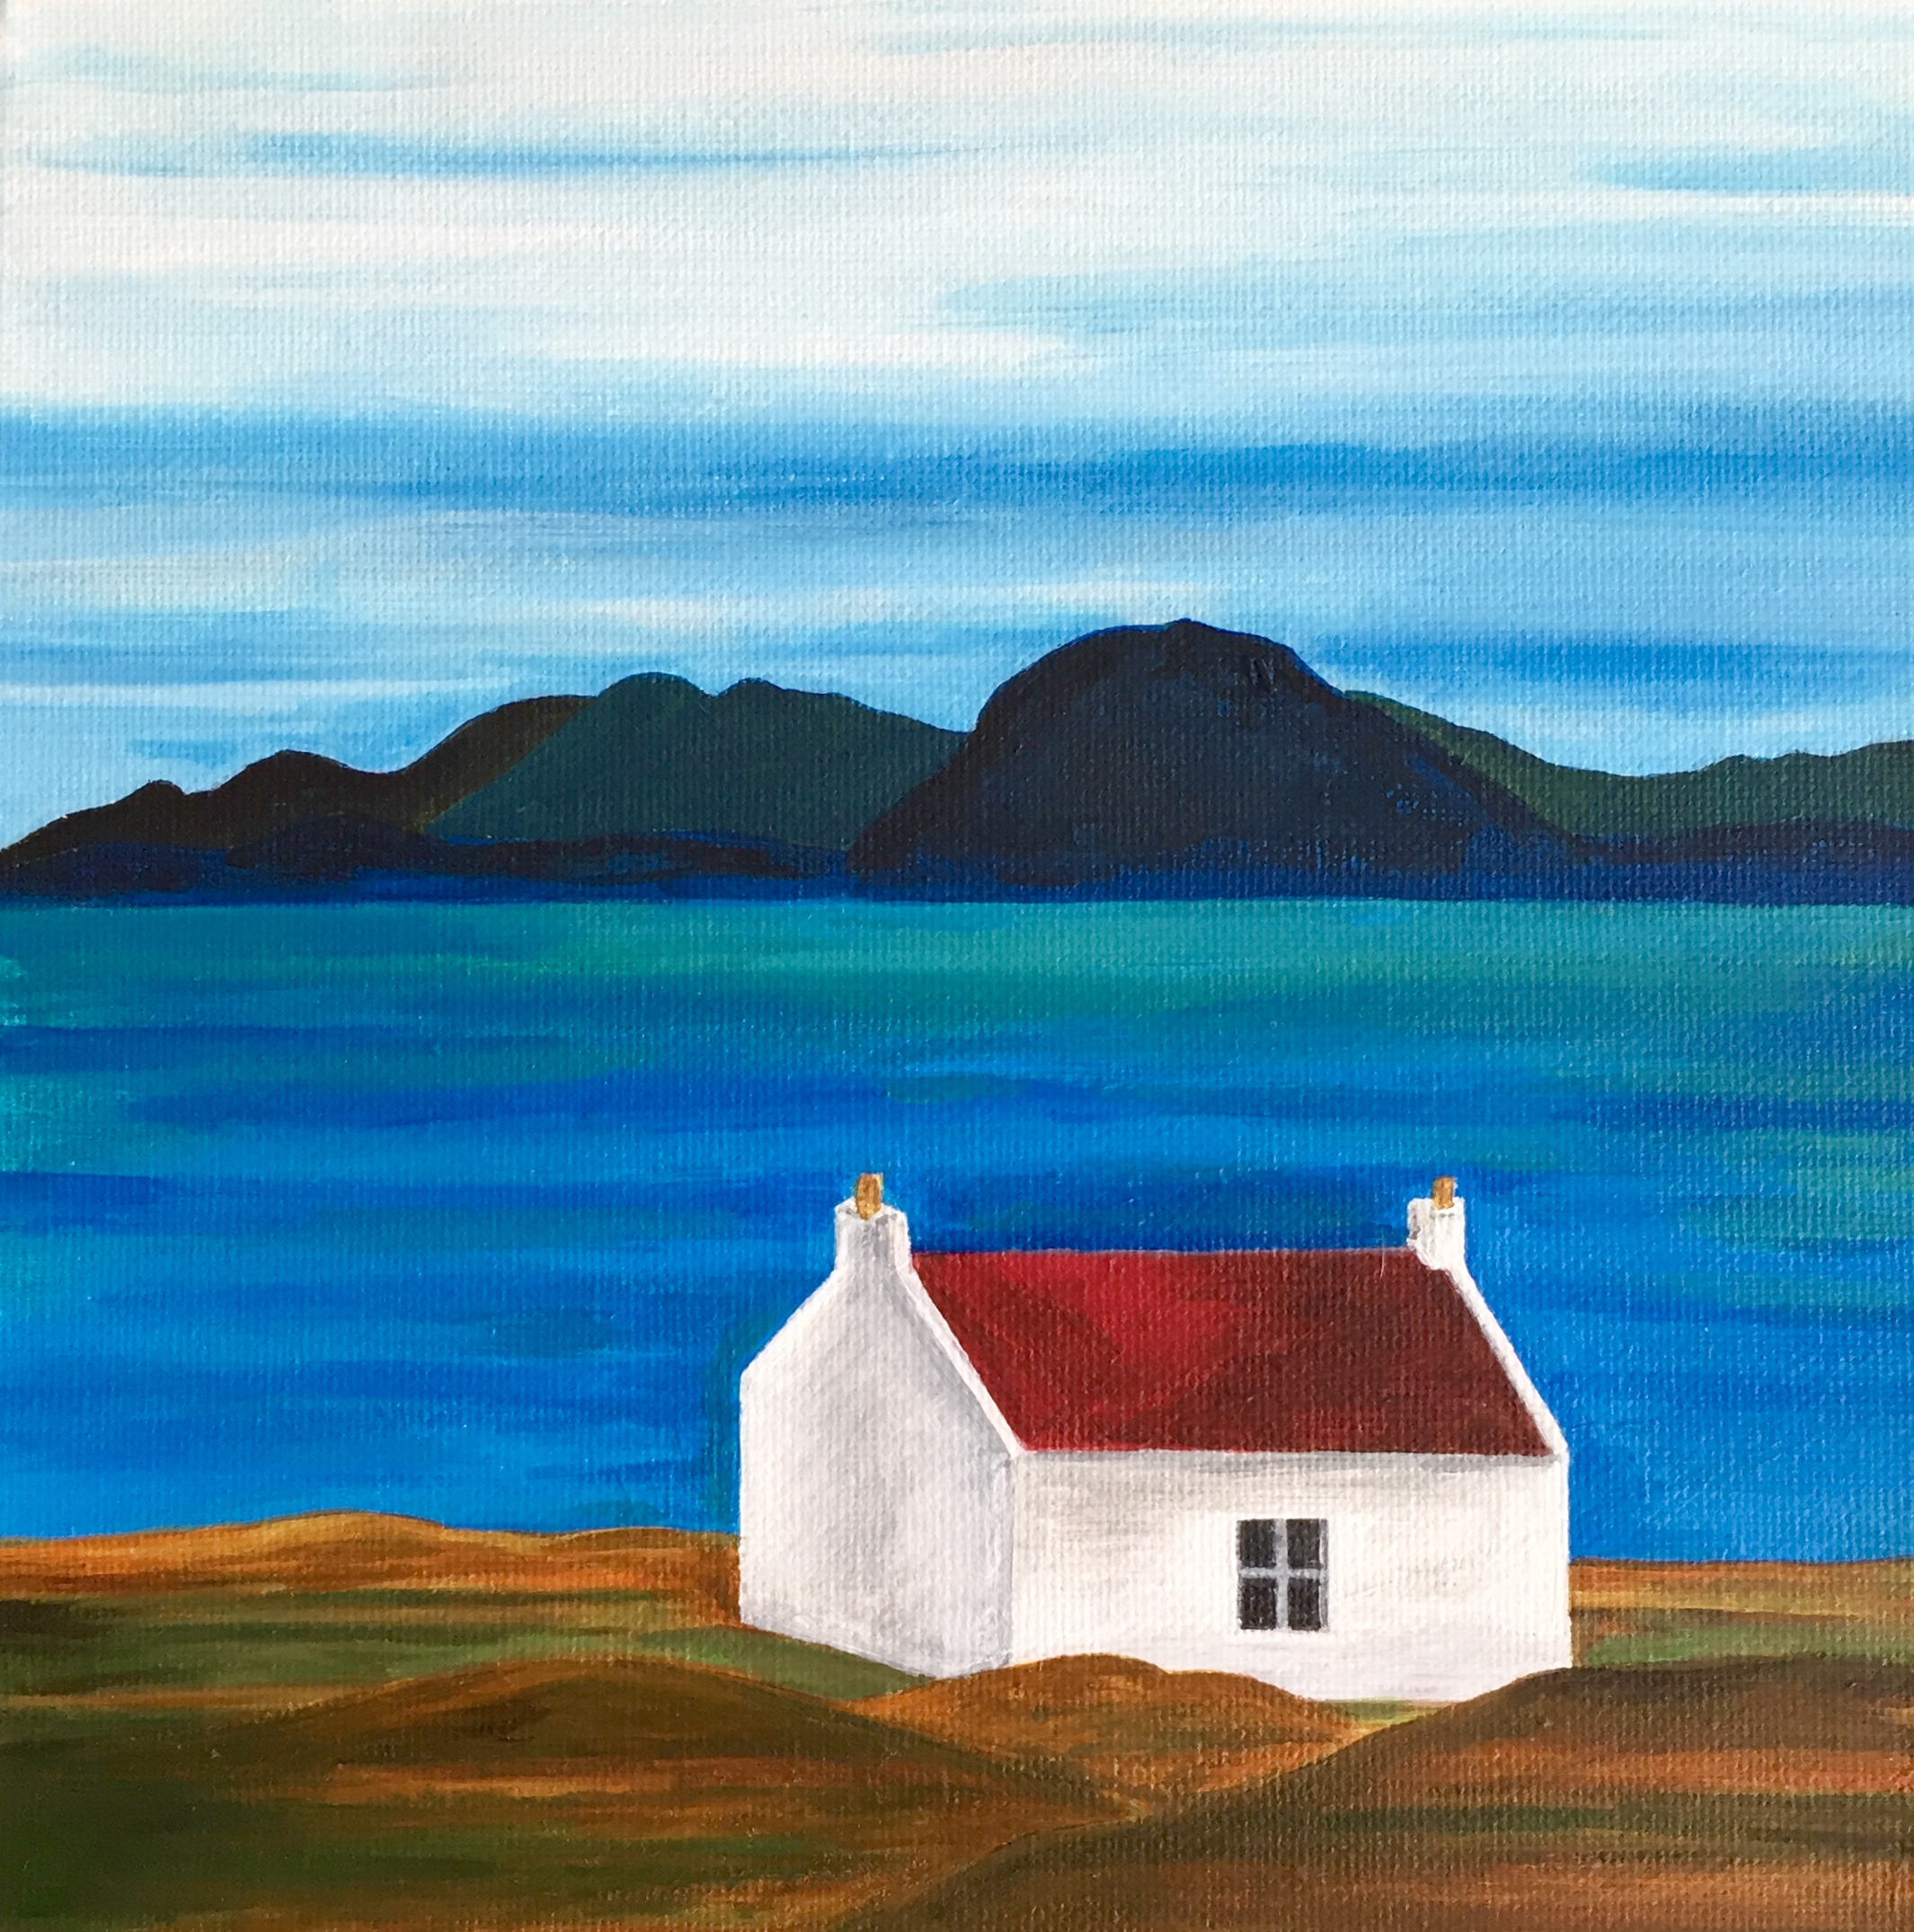 Wee House - Applecross